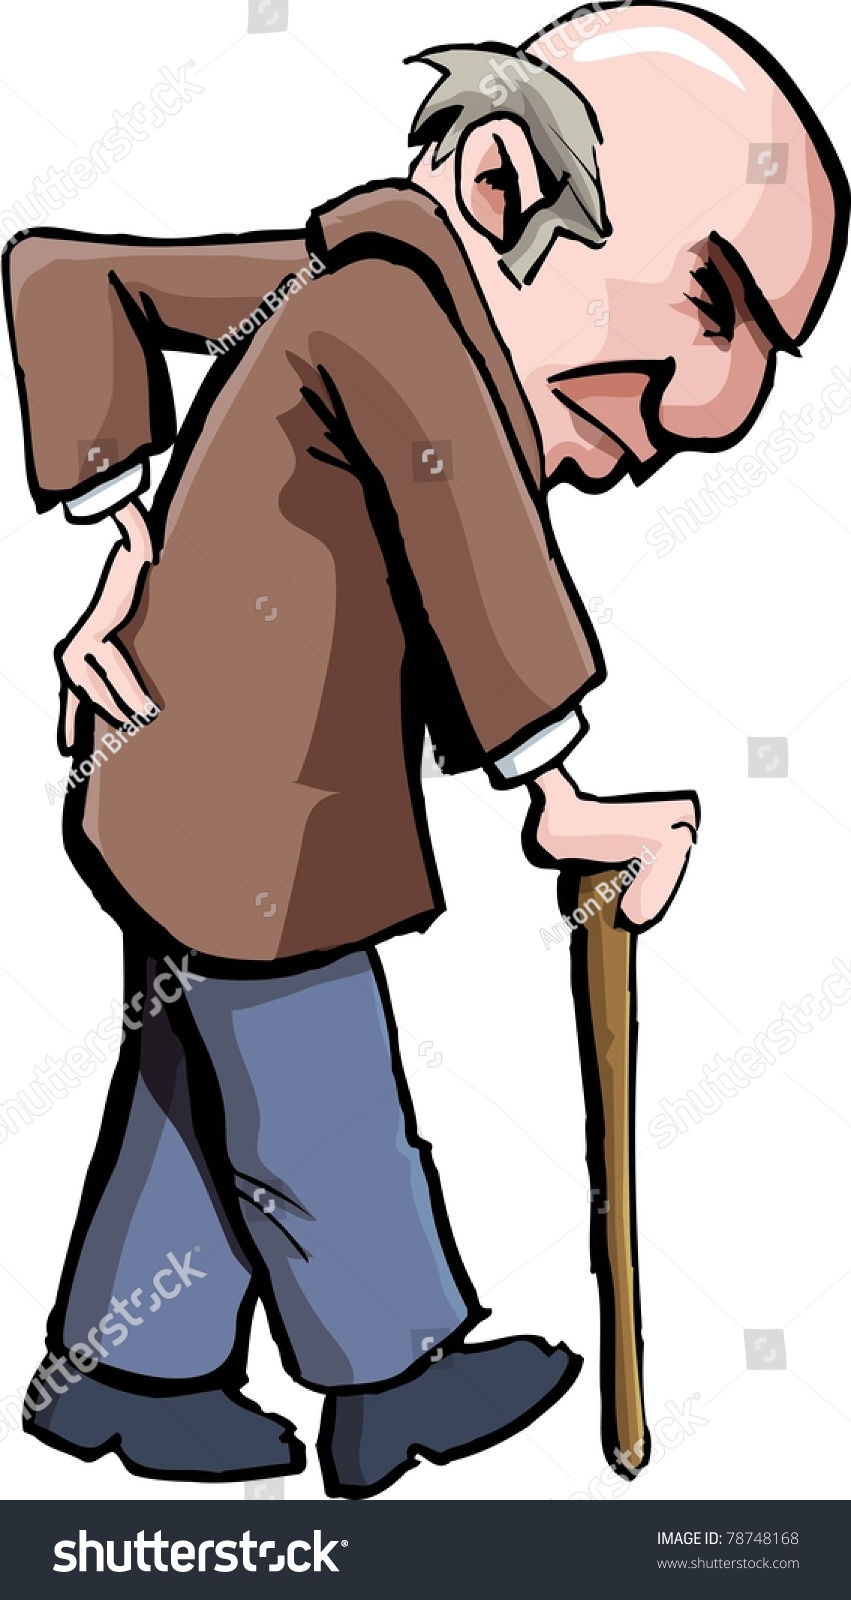 Cartoon Of Old Man With A Walking Stick Isolated On White